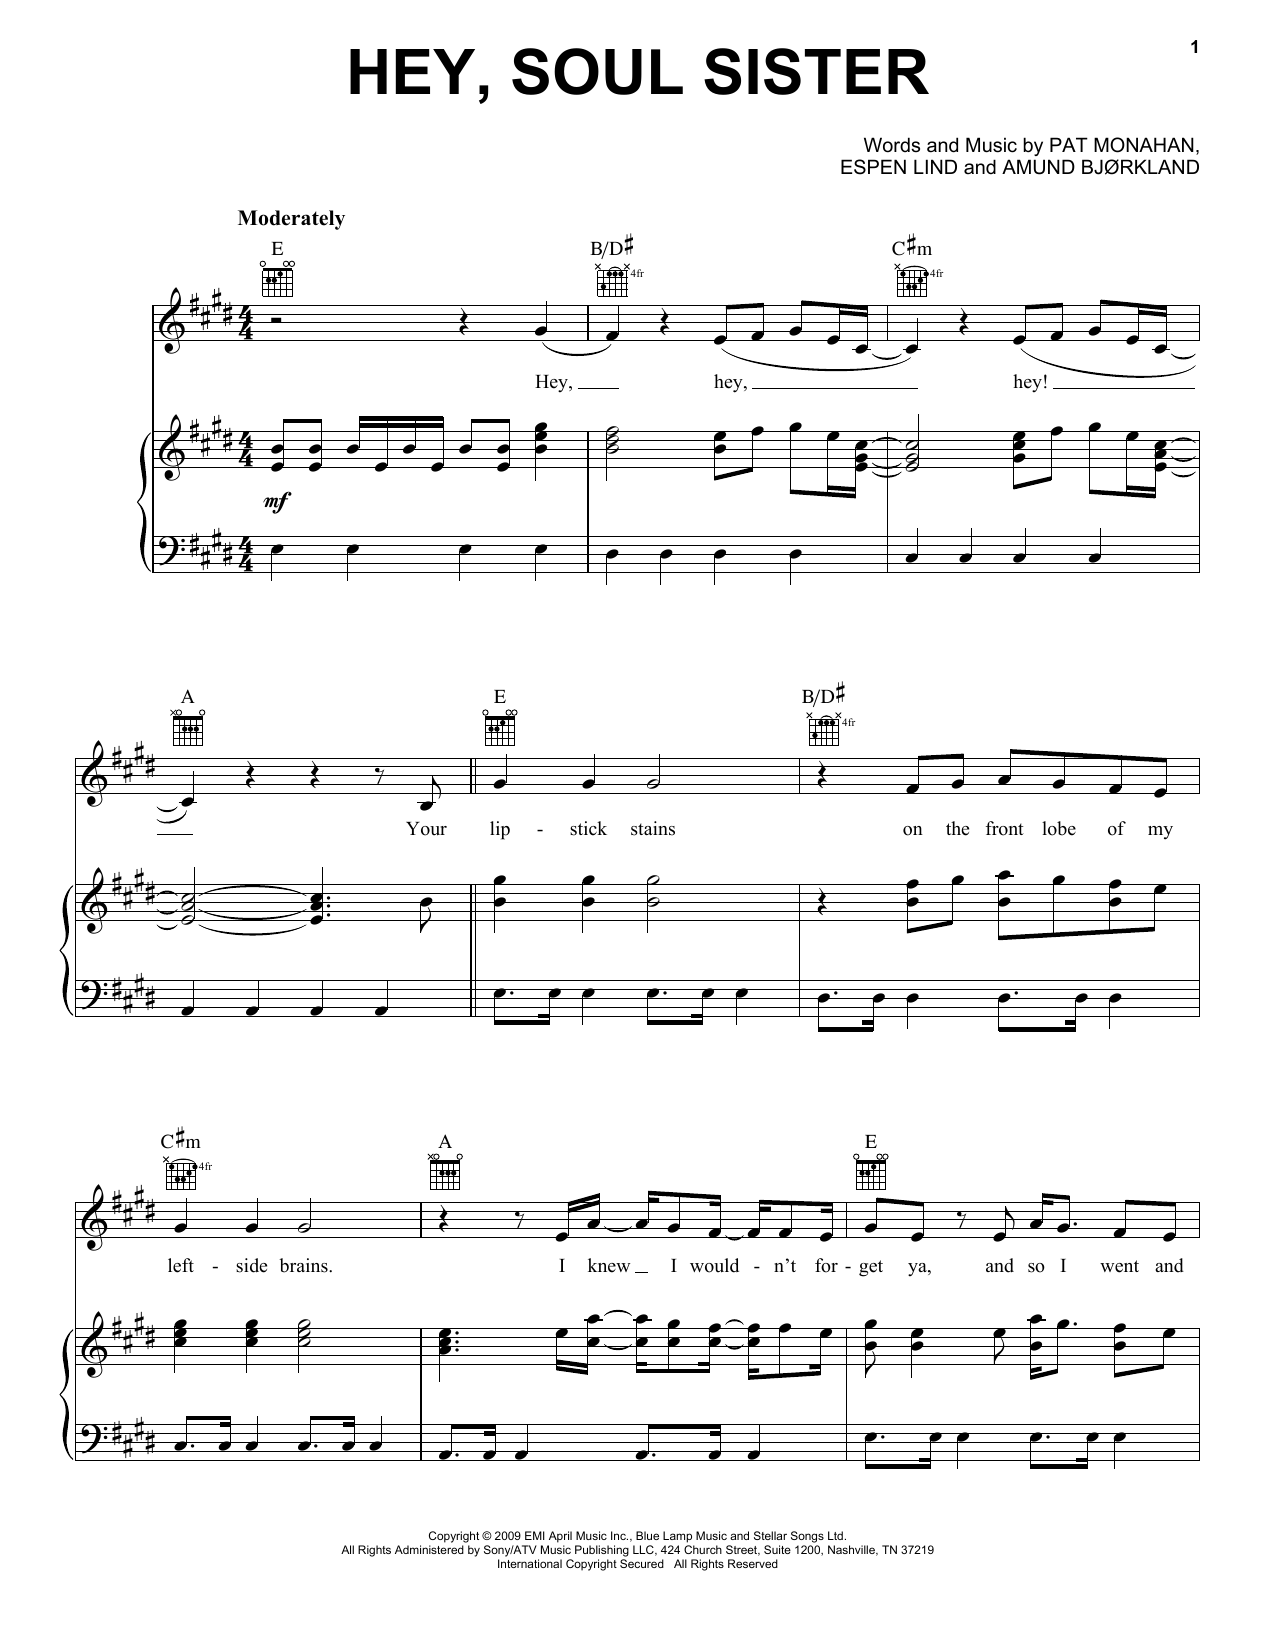 Train Hey, Soul Sister Sheet Music, Notes & Chords